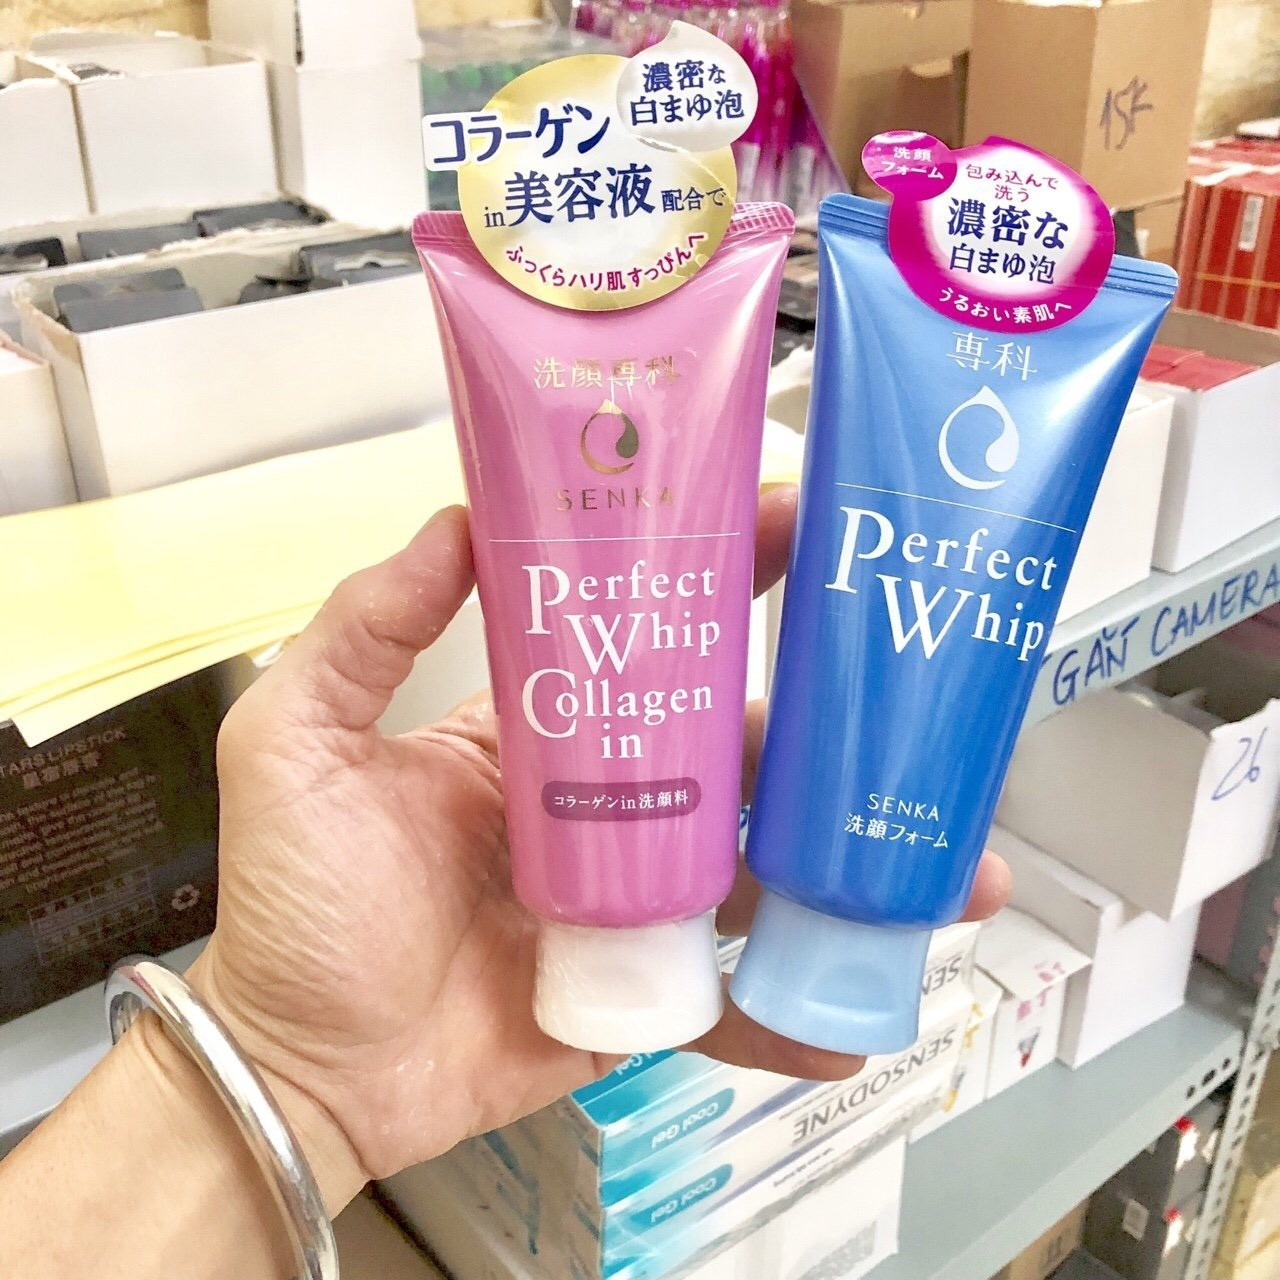 Sữa rửa mặt Perfect Whip collagen in màu hồng